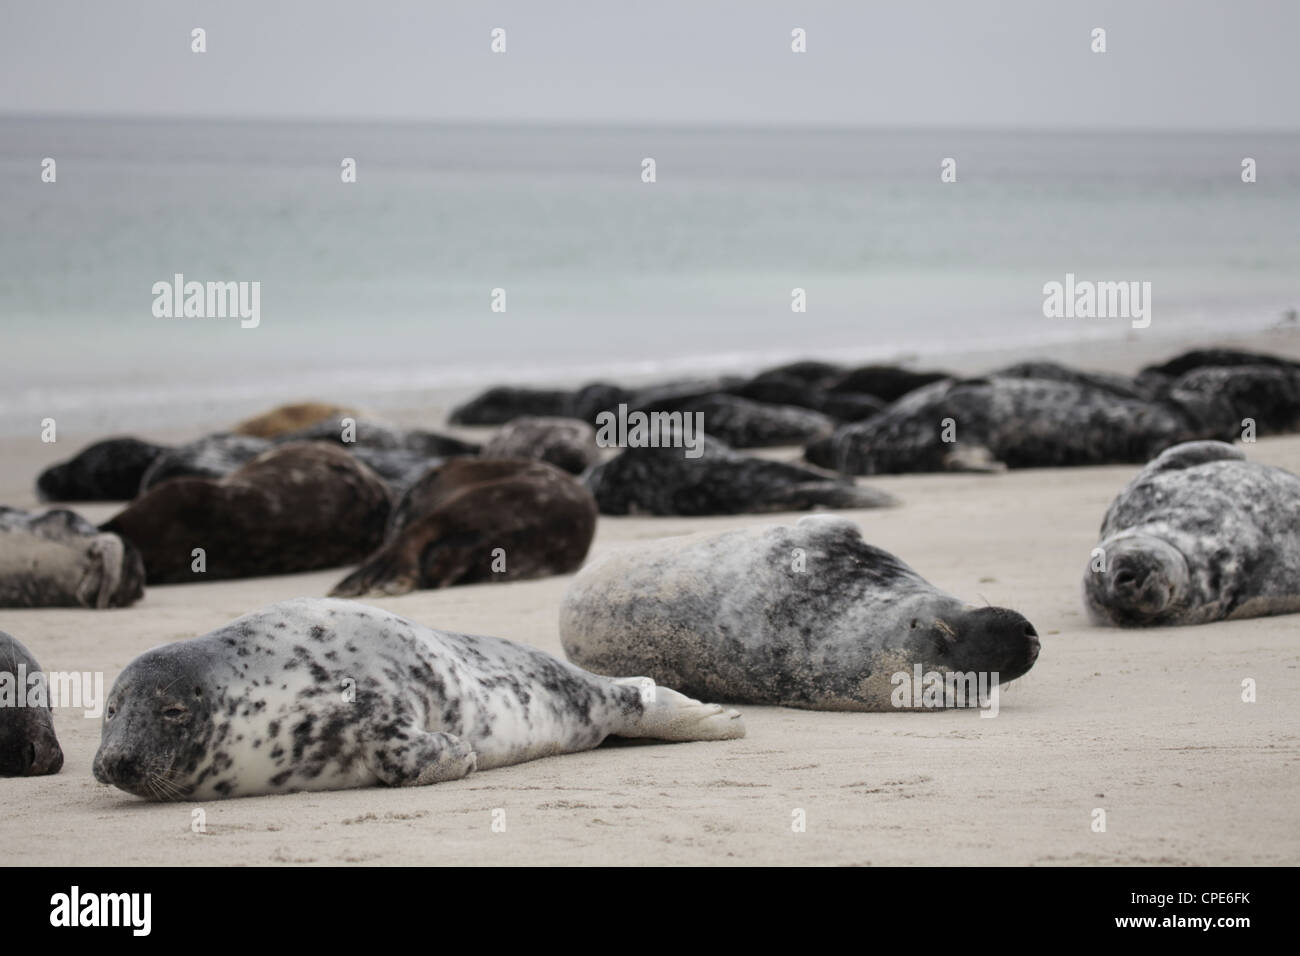 A group of grey seals Halichoerus grypus lying on the beach of Helgoland, North Sea - Stock Image